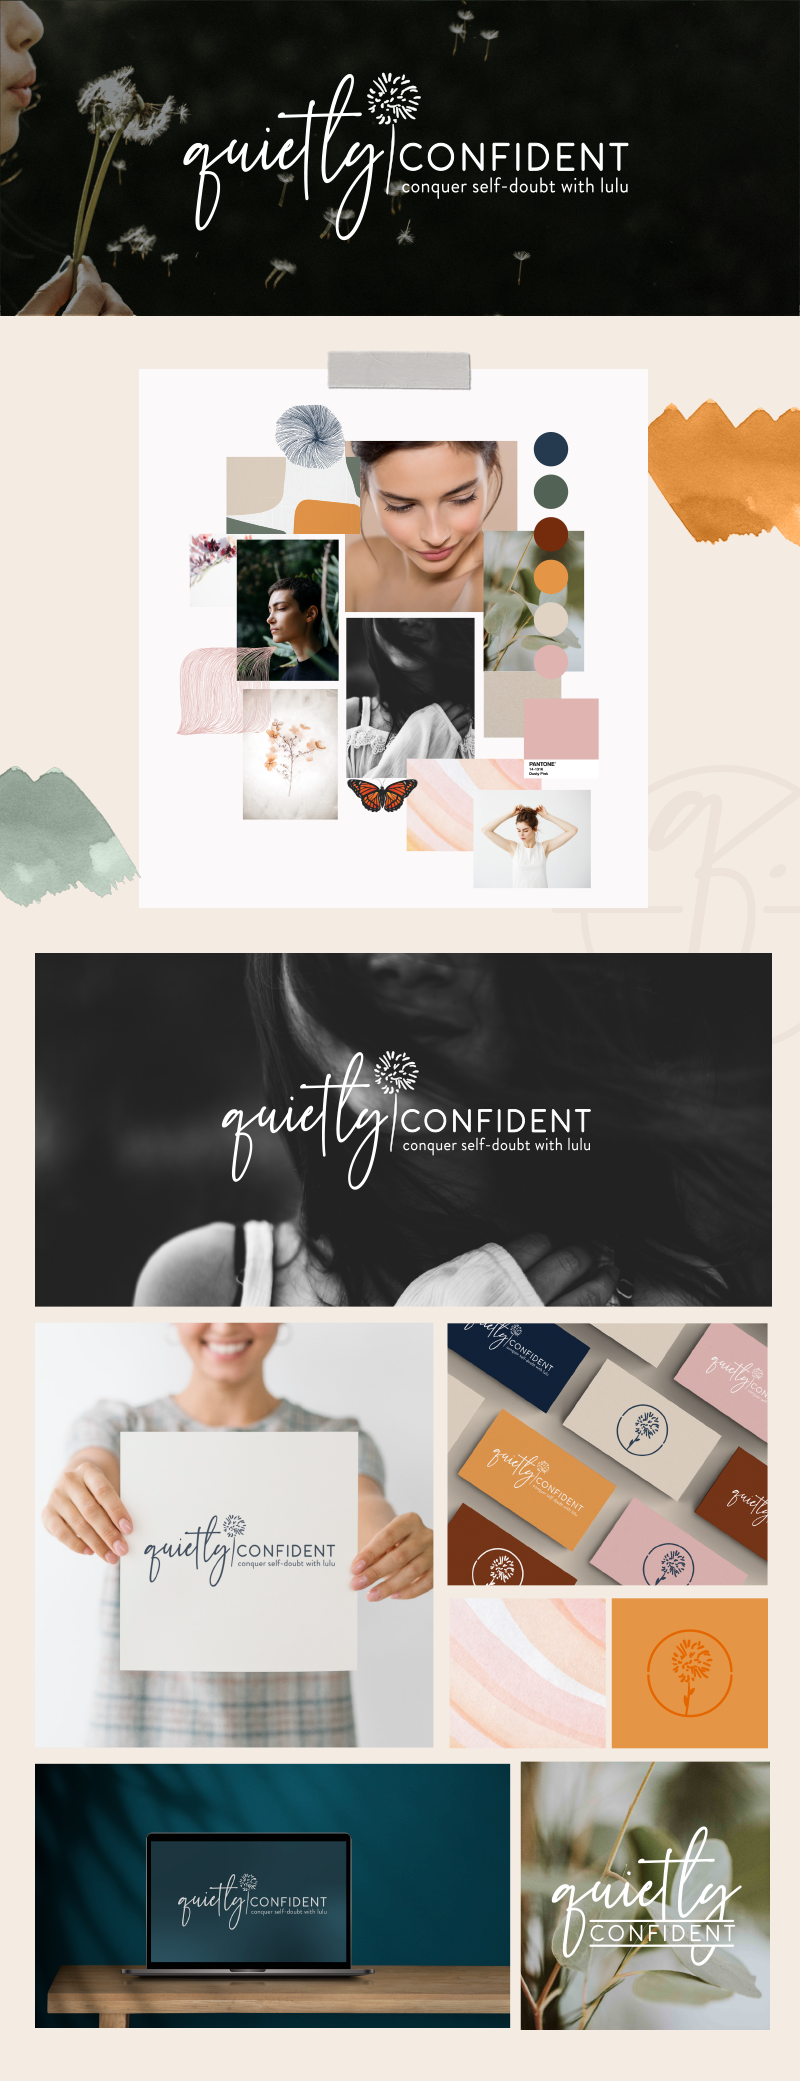 Quietly confident logo and brand design simply whyte design auckland new zealand.png